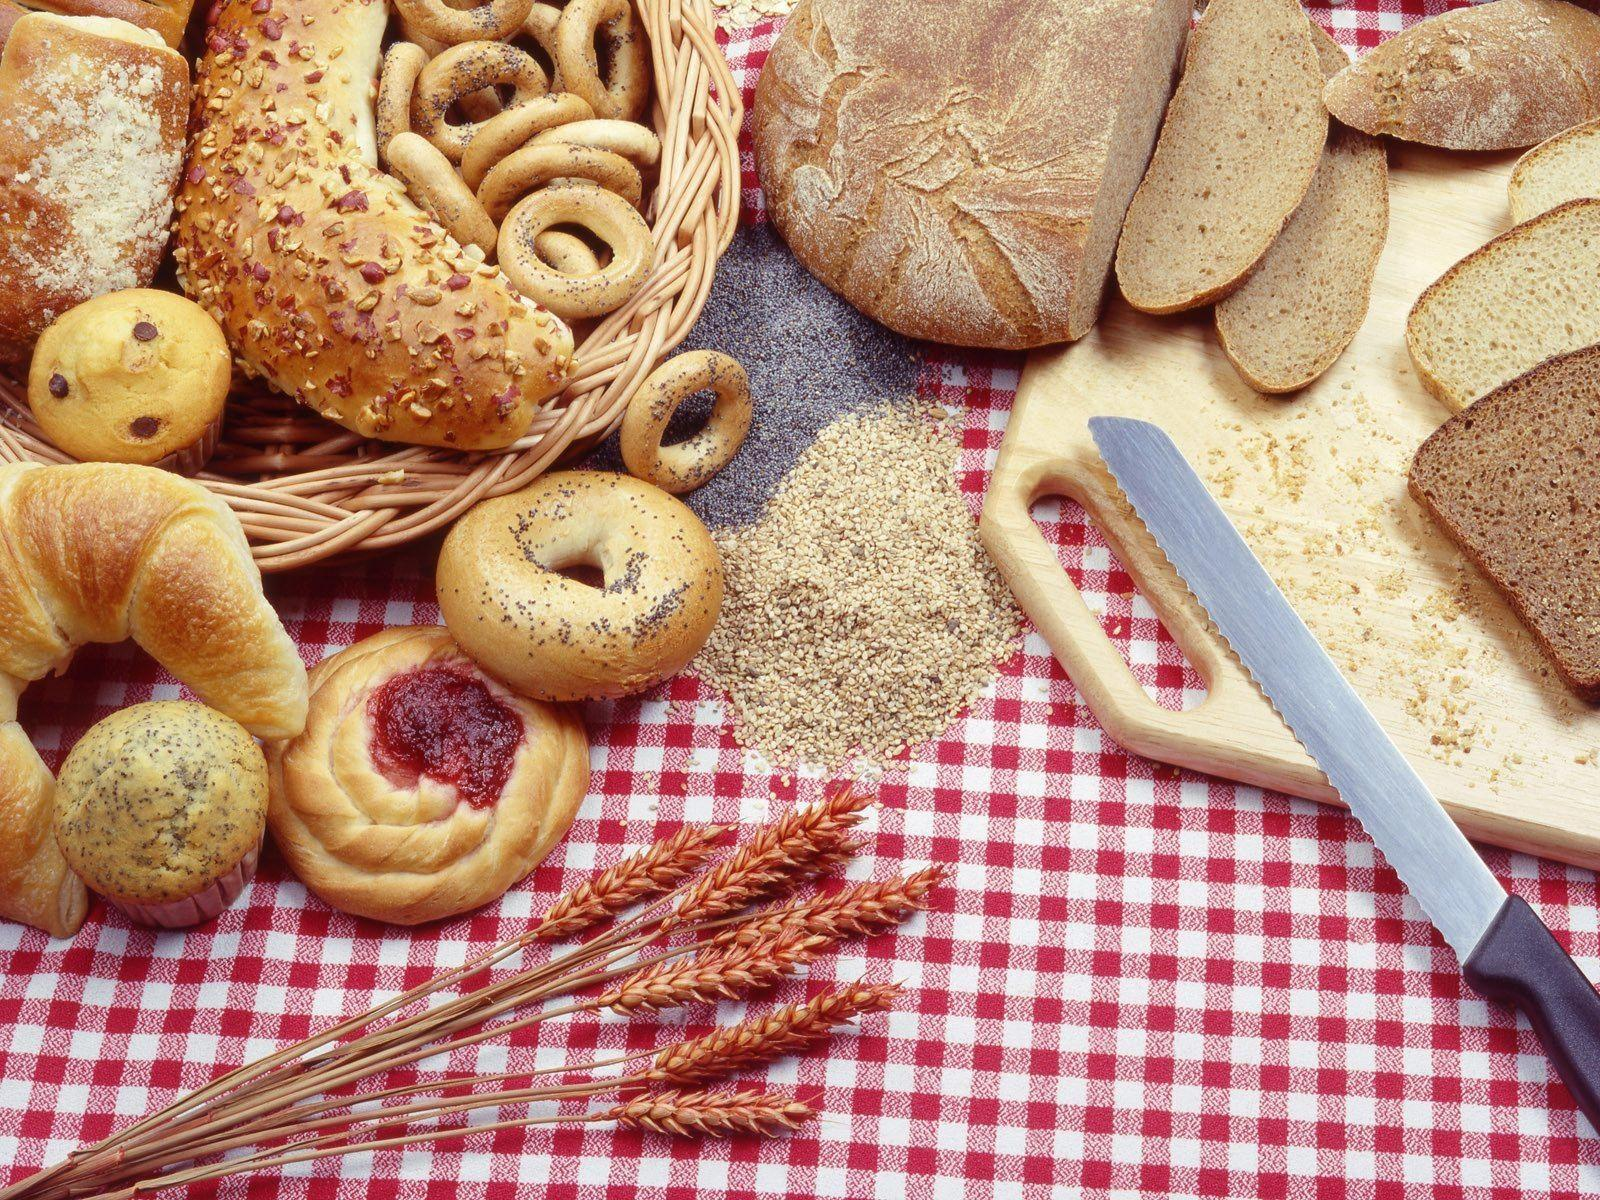 Download Wallpaper 1600x1200 Bakery, Spikes, Knives, Boards ...